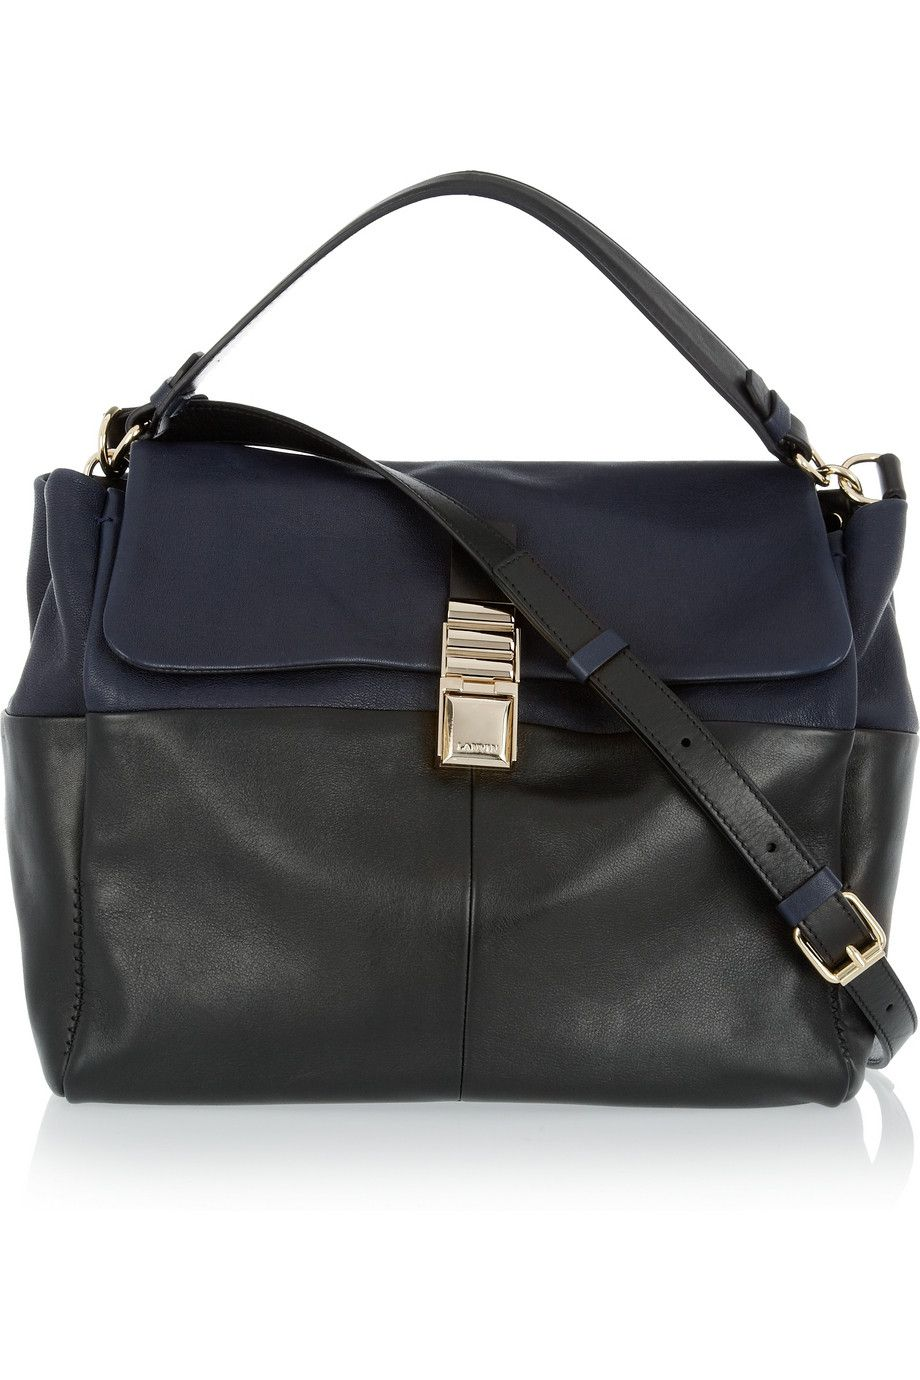 Lanvin For Me Two Tone Leather Shoulder Bag Want